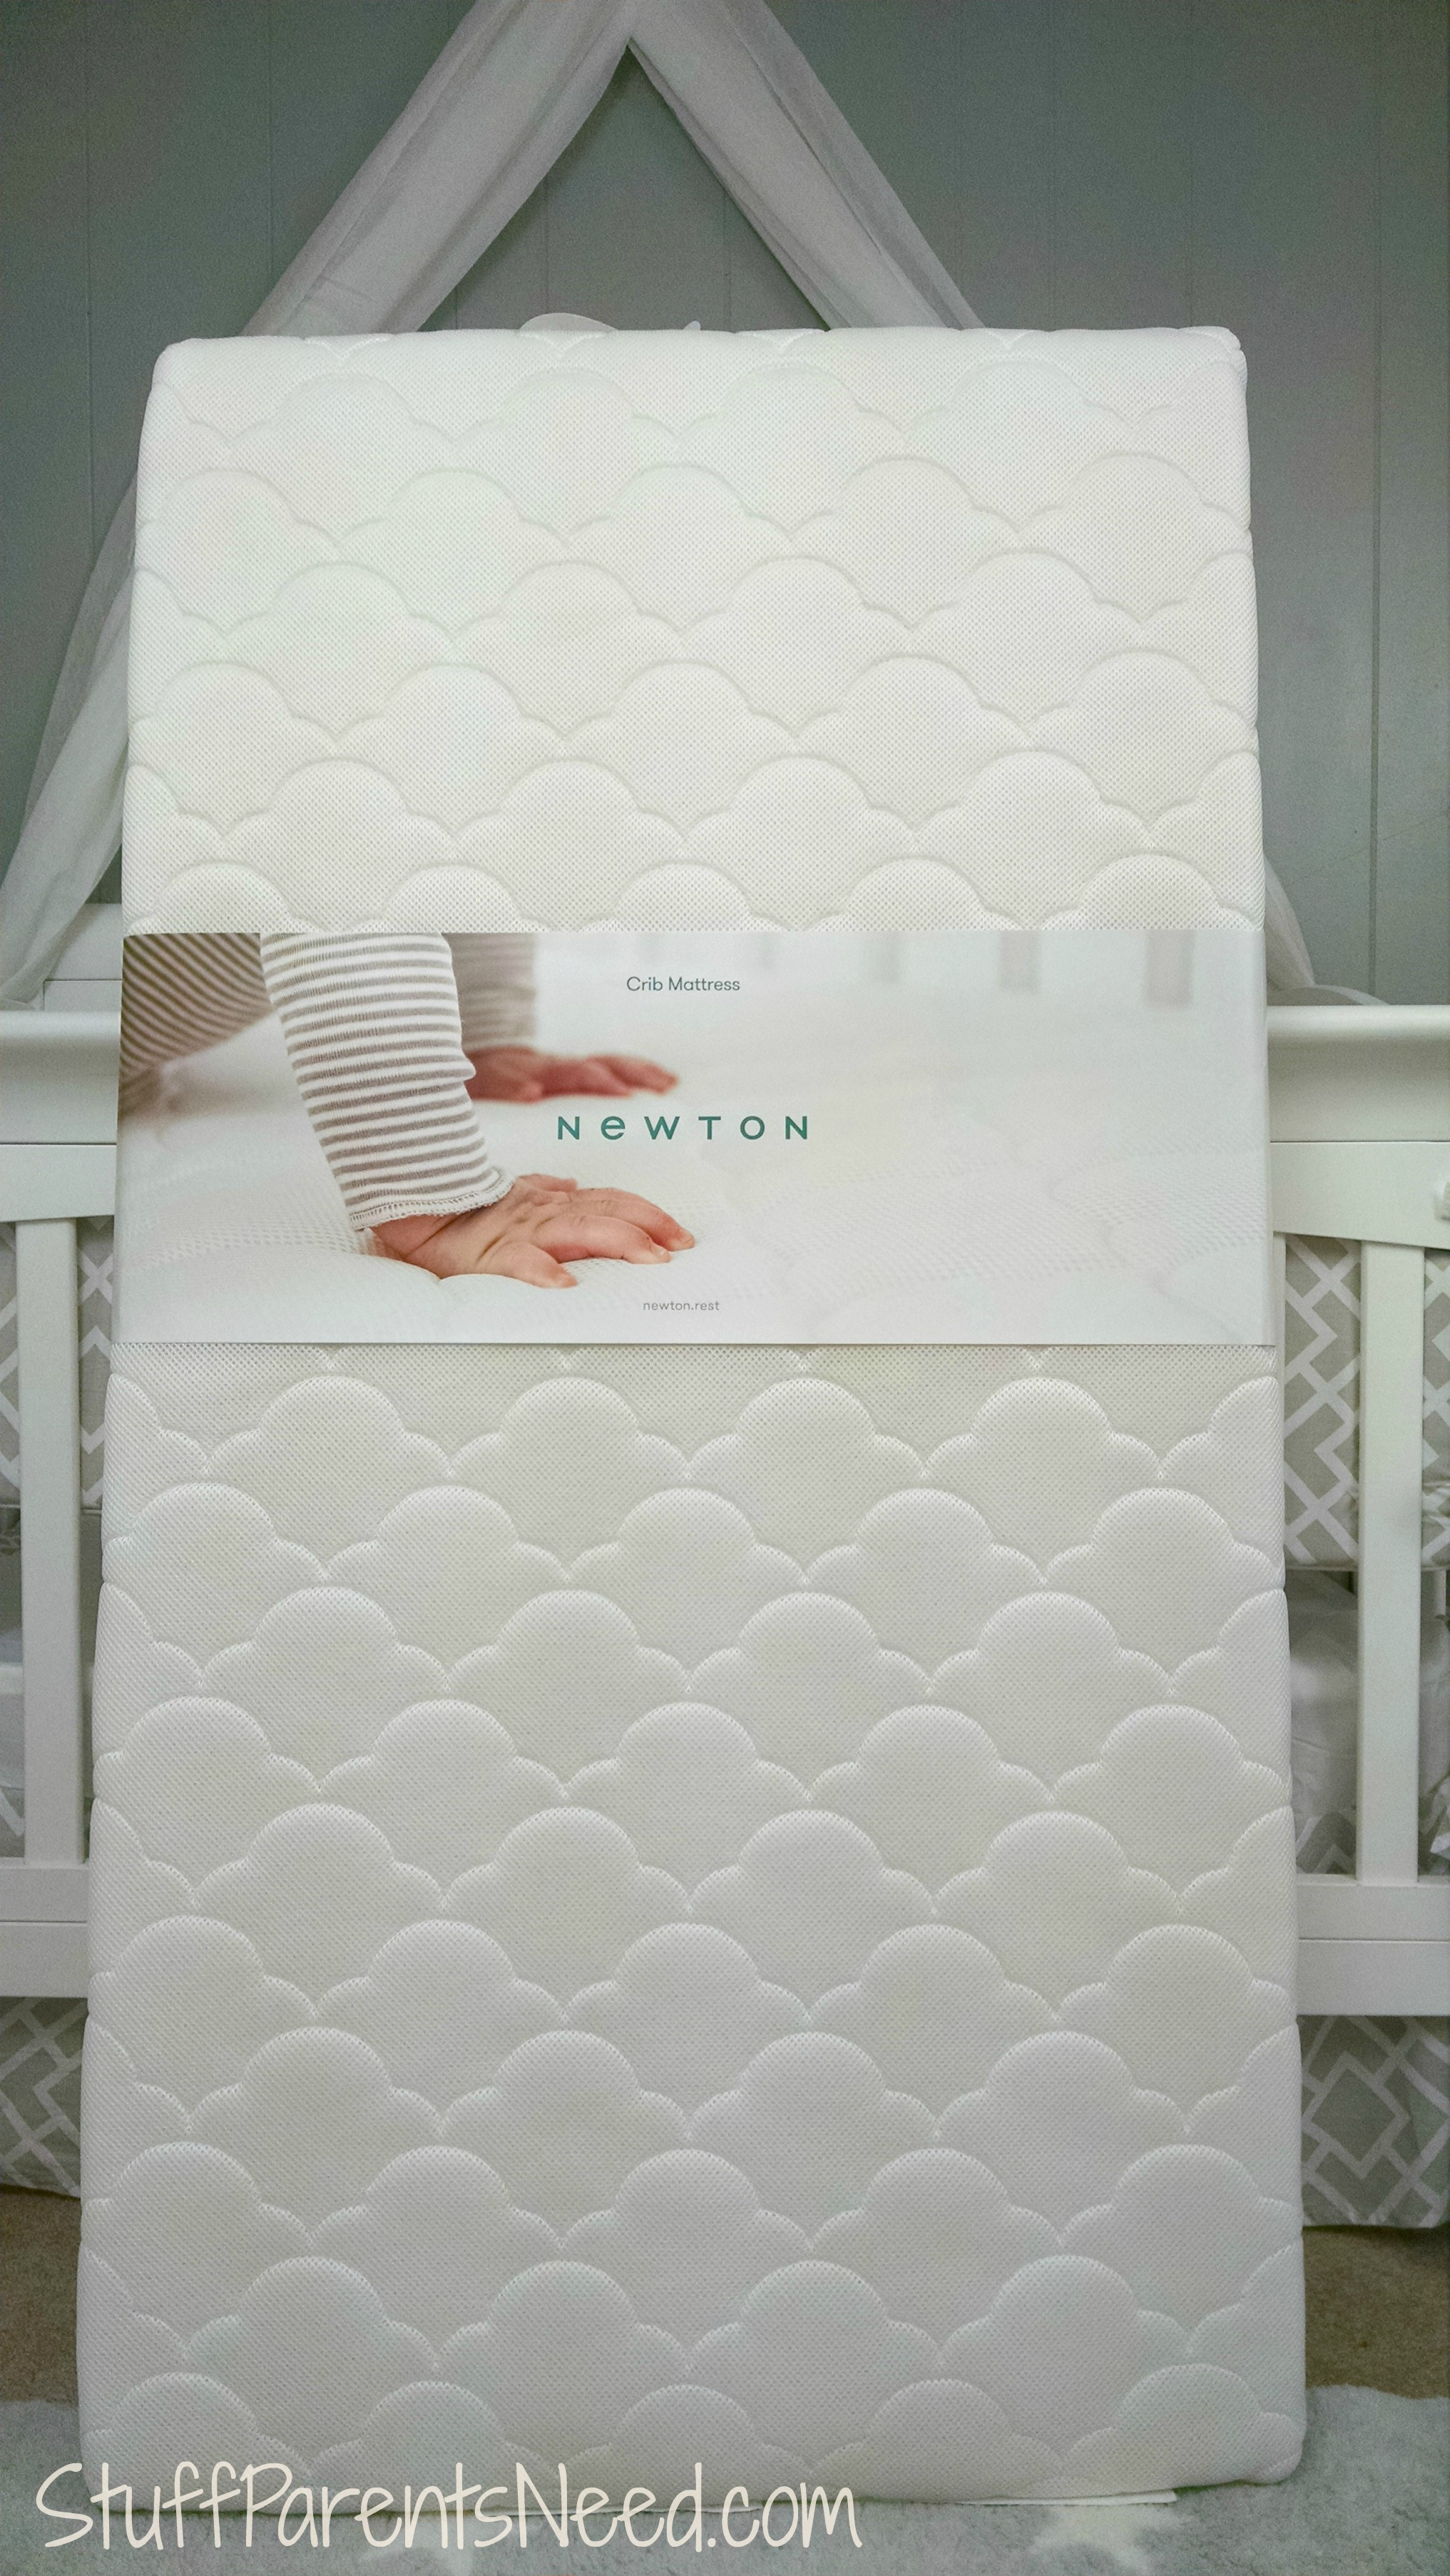 a cot monkey clever bed mattress sleepsystem ss purflo little product breathable crib